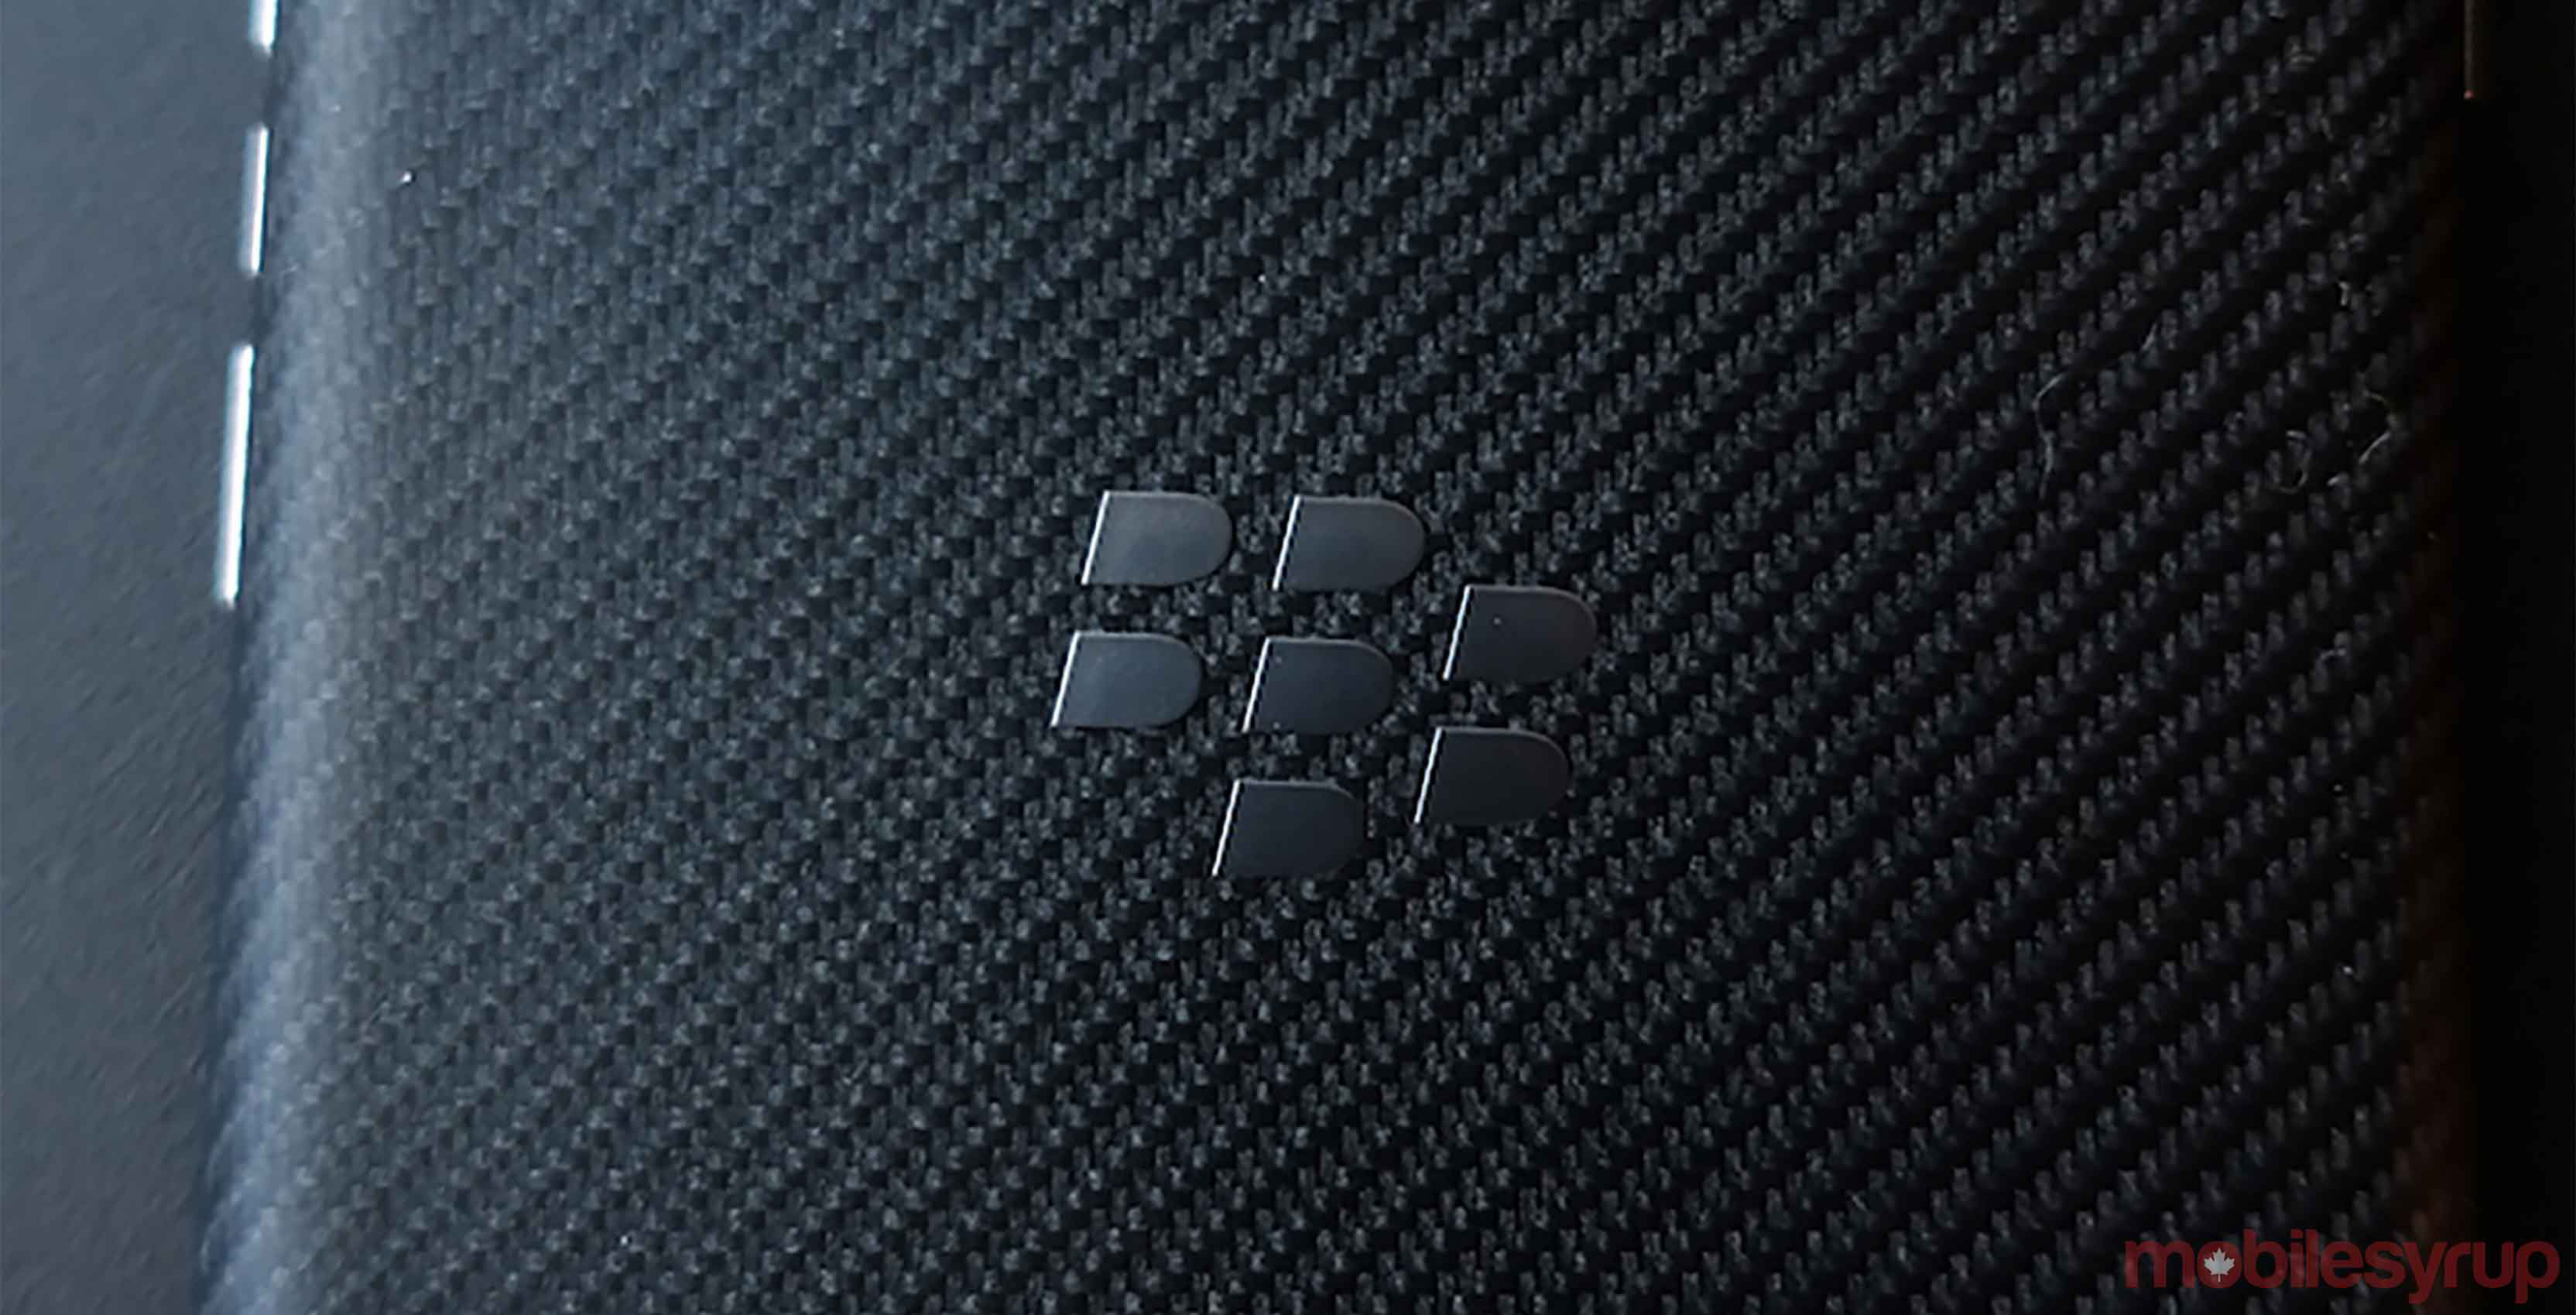 TCL's Next BlackBerry Smartphone Will Ditch The Keyboard, Will Be Water Resistant